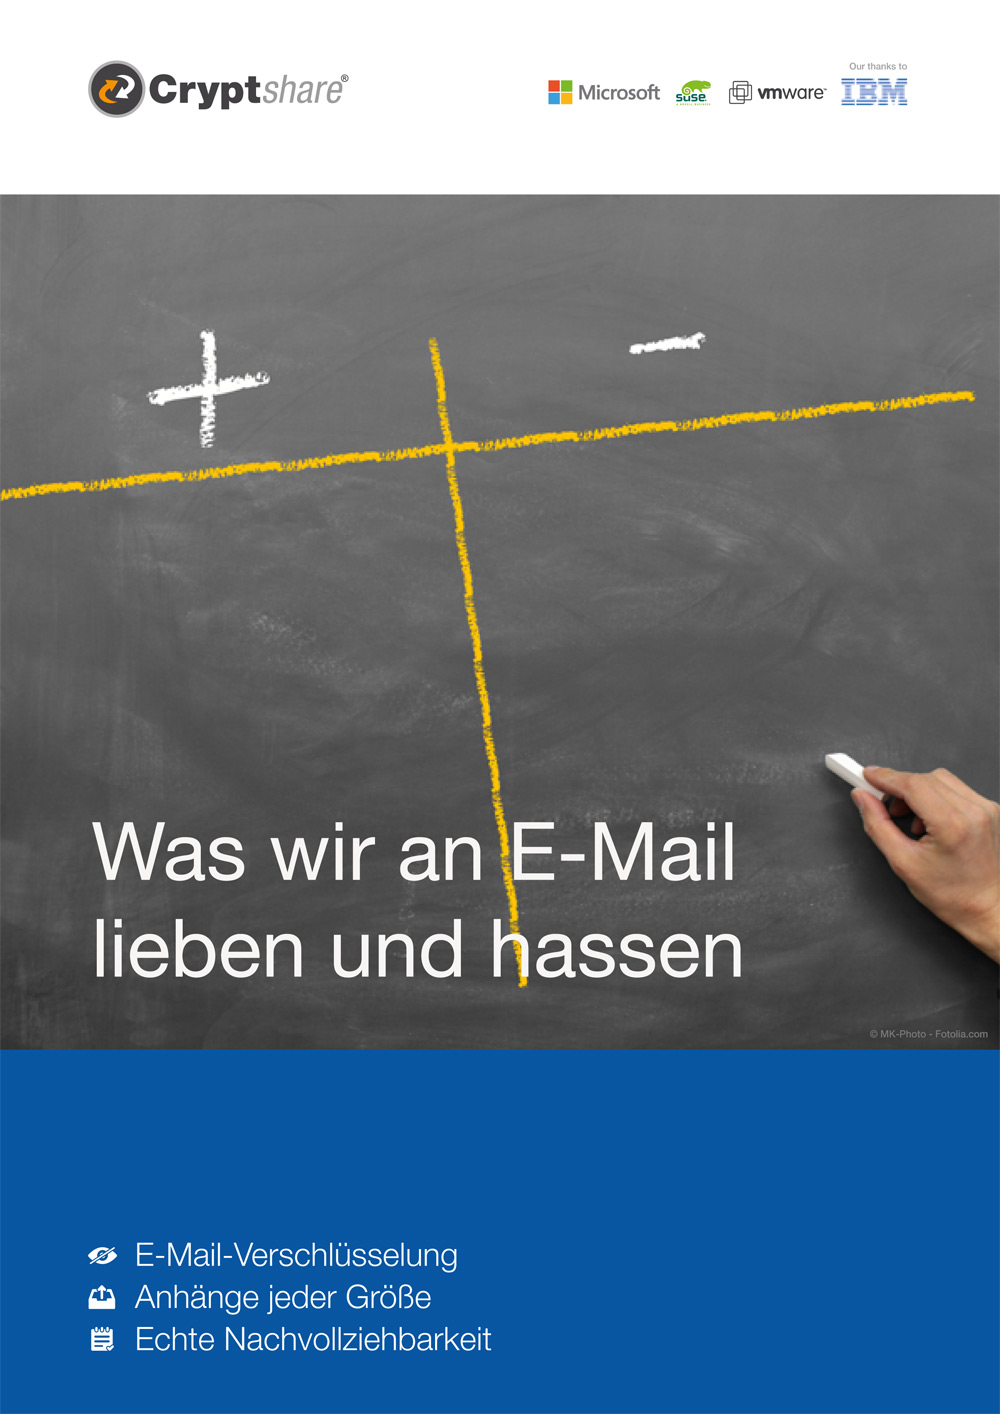 Cryptshare-What_is_it_we_love_and_hate_about_email-05282019-DACH-DE-web